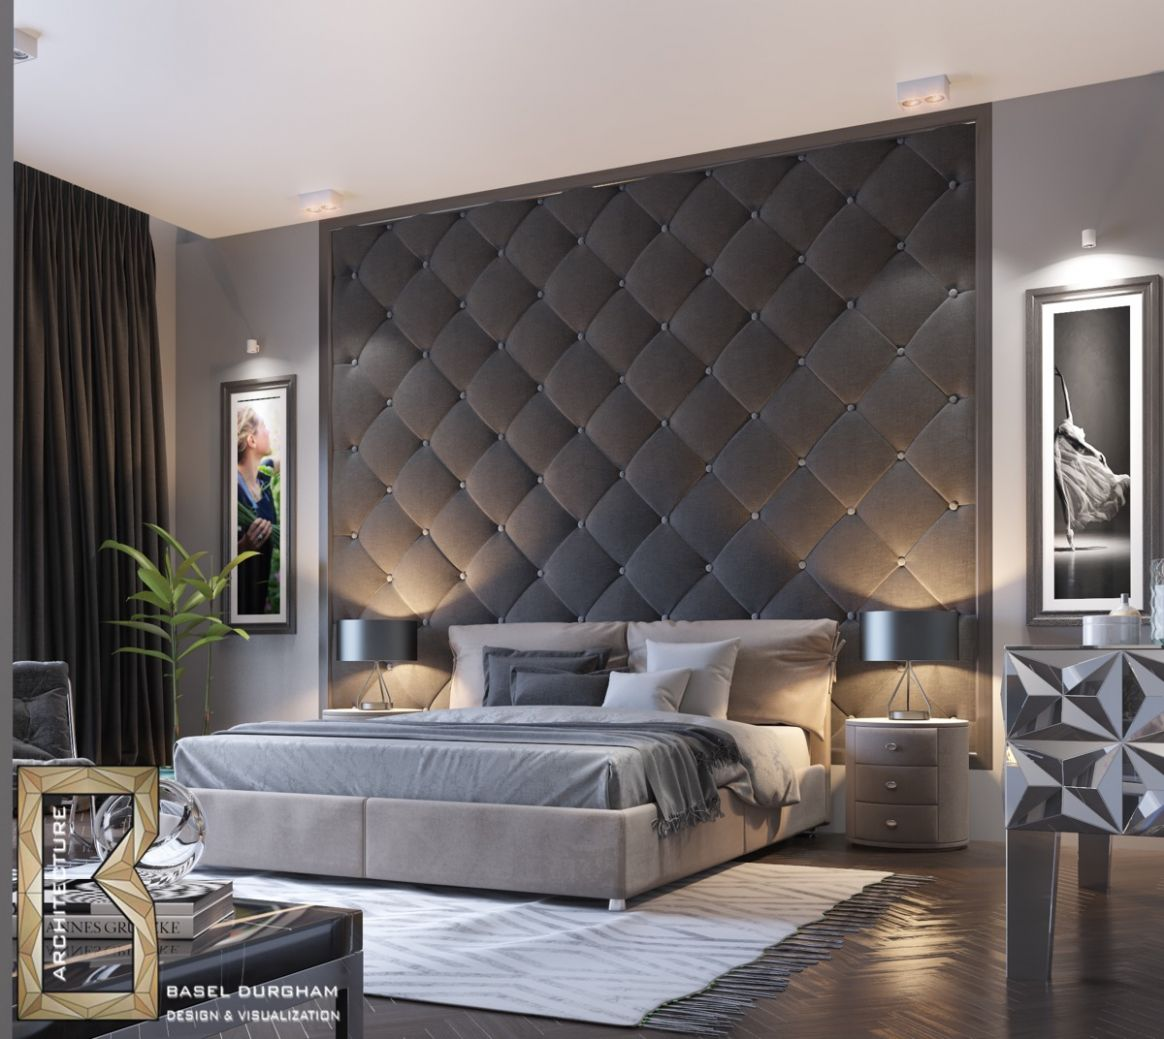 11 Awesome Accent Wall Ideas For Your Bedroom - wall decor ideas behind bed